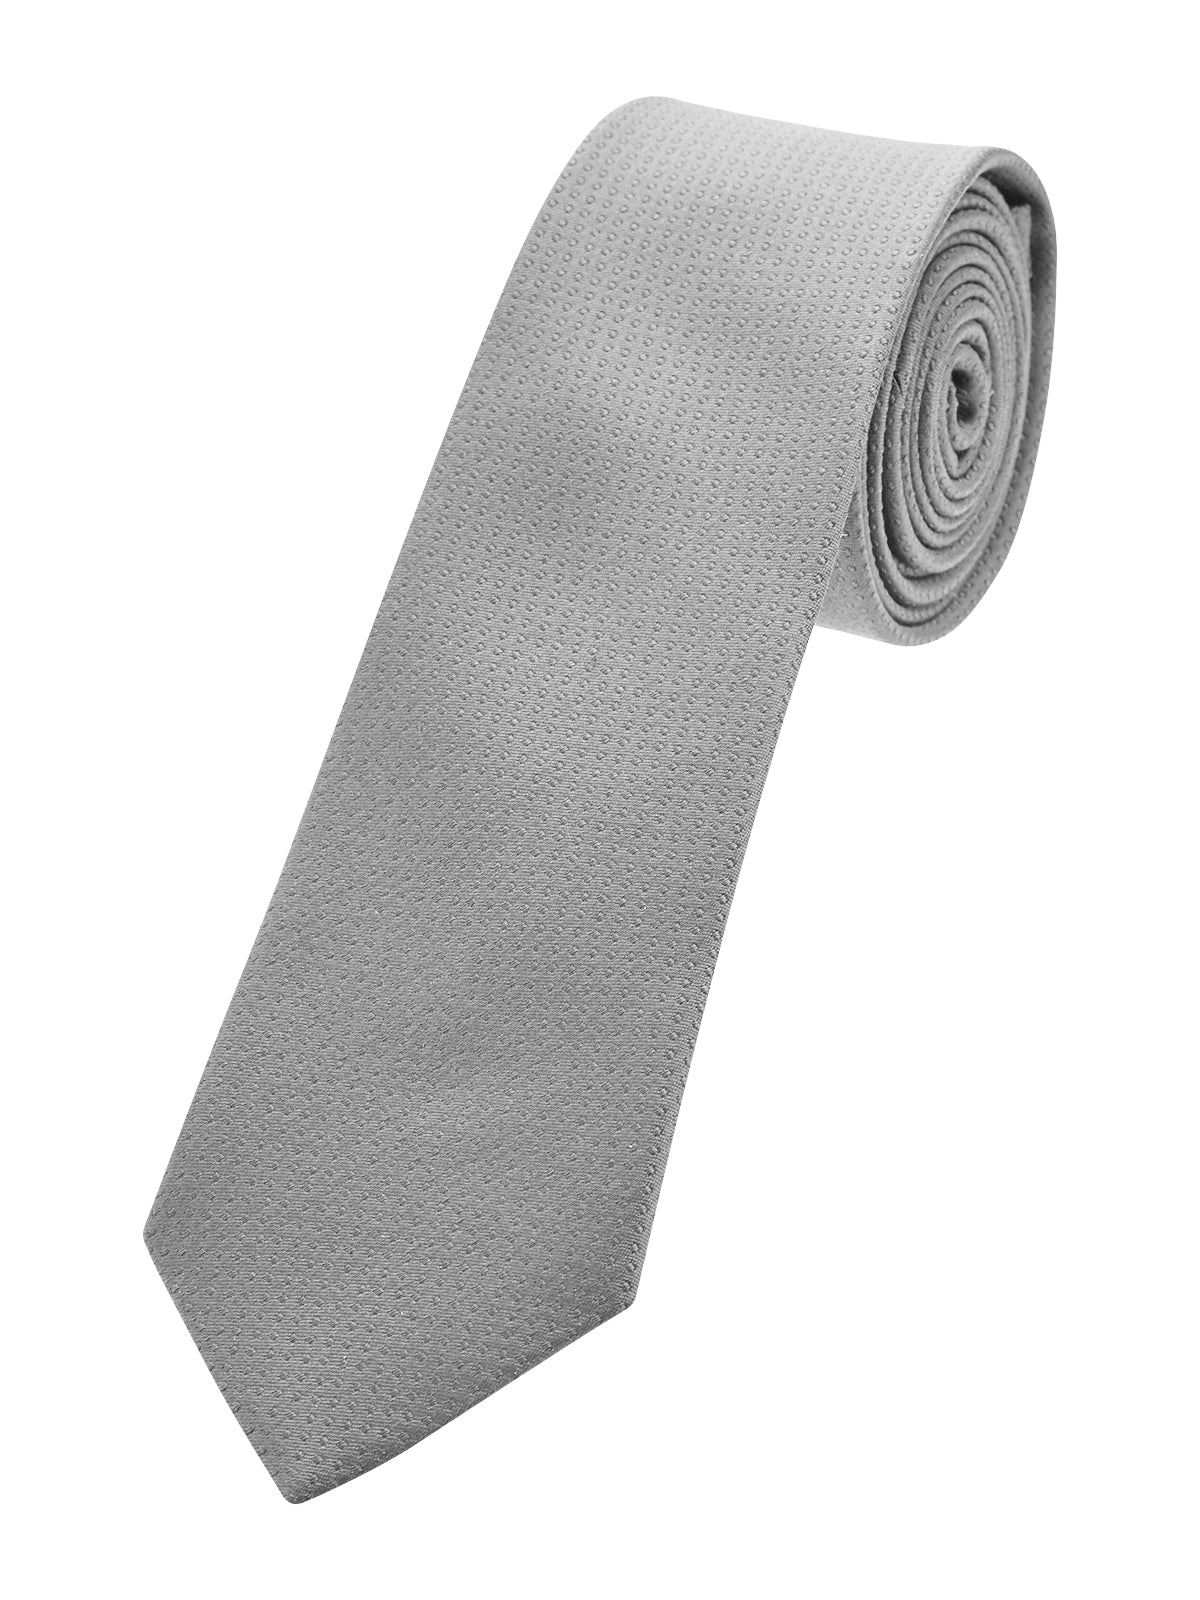 SILK TIE GREY DOTS SKNY